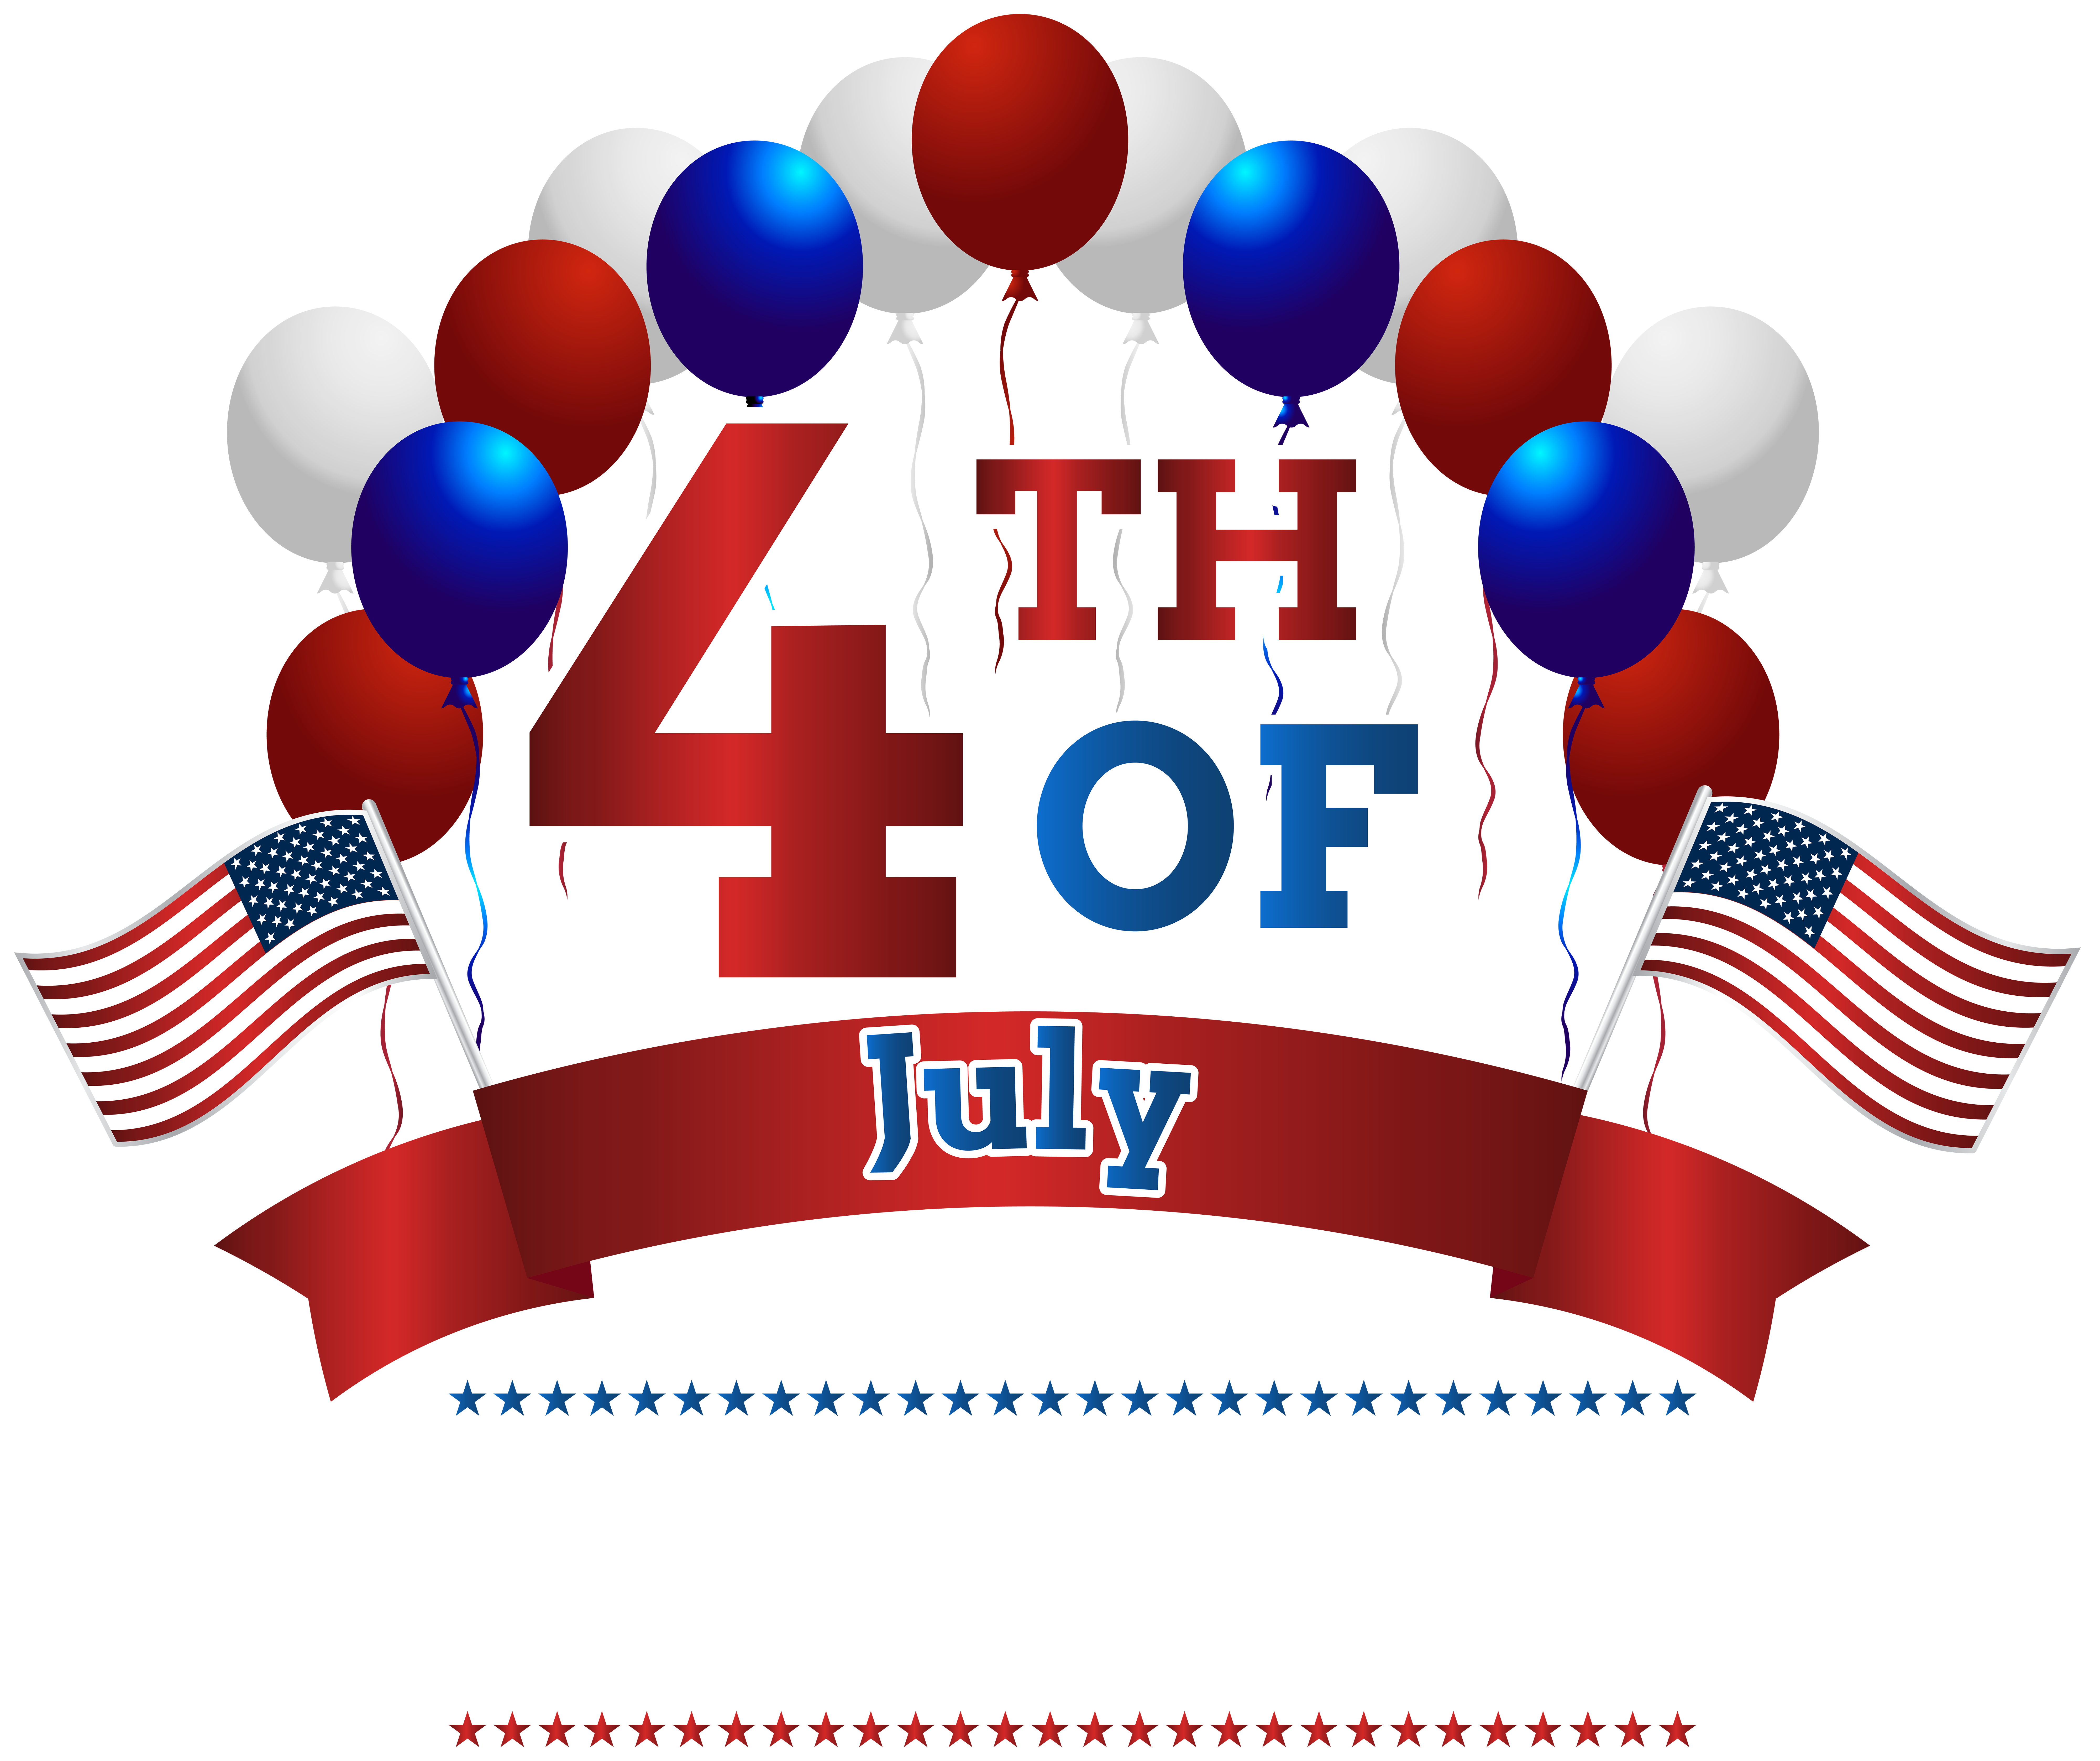 July Clipart Transparent.